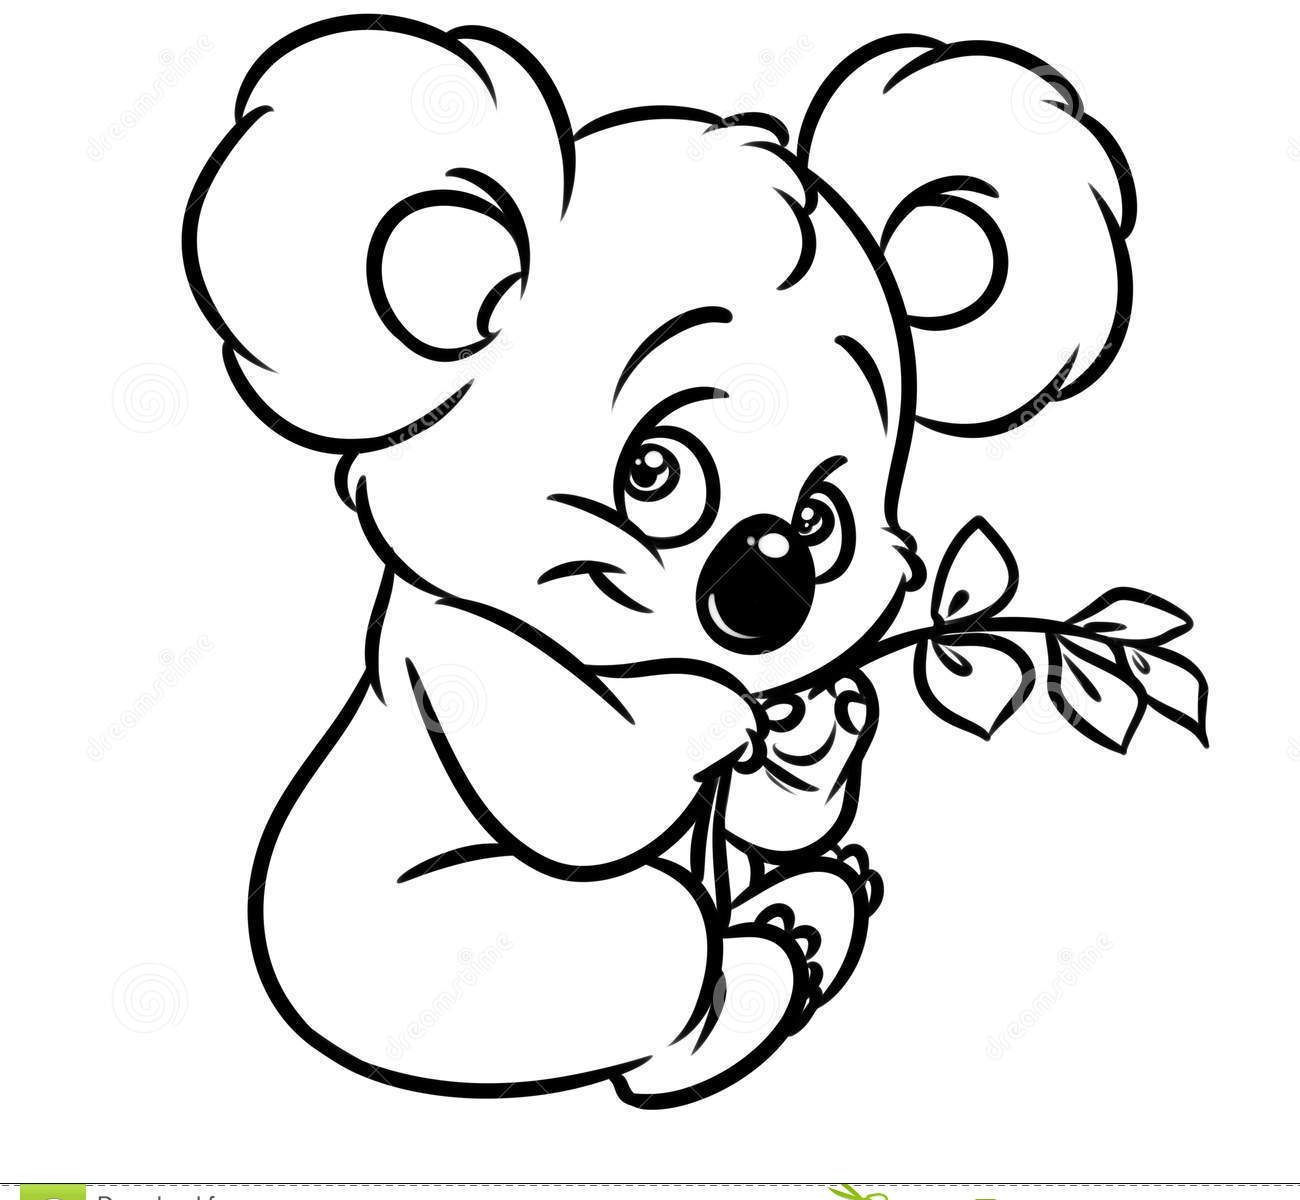 Koala Cartoon Drawing at GetDrawings Free for